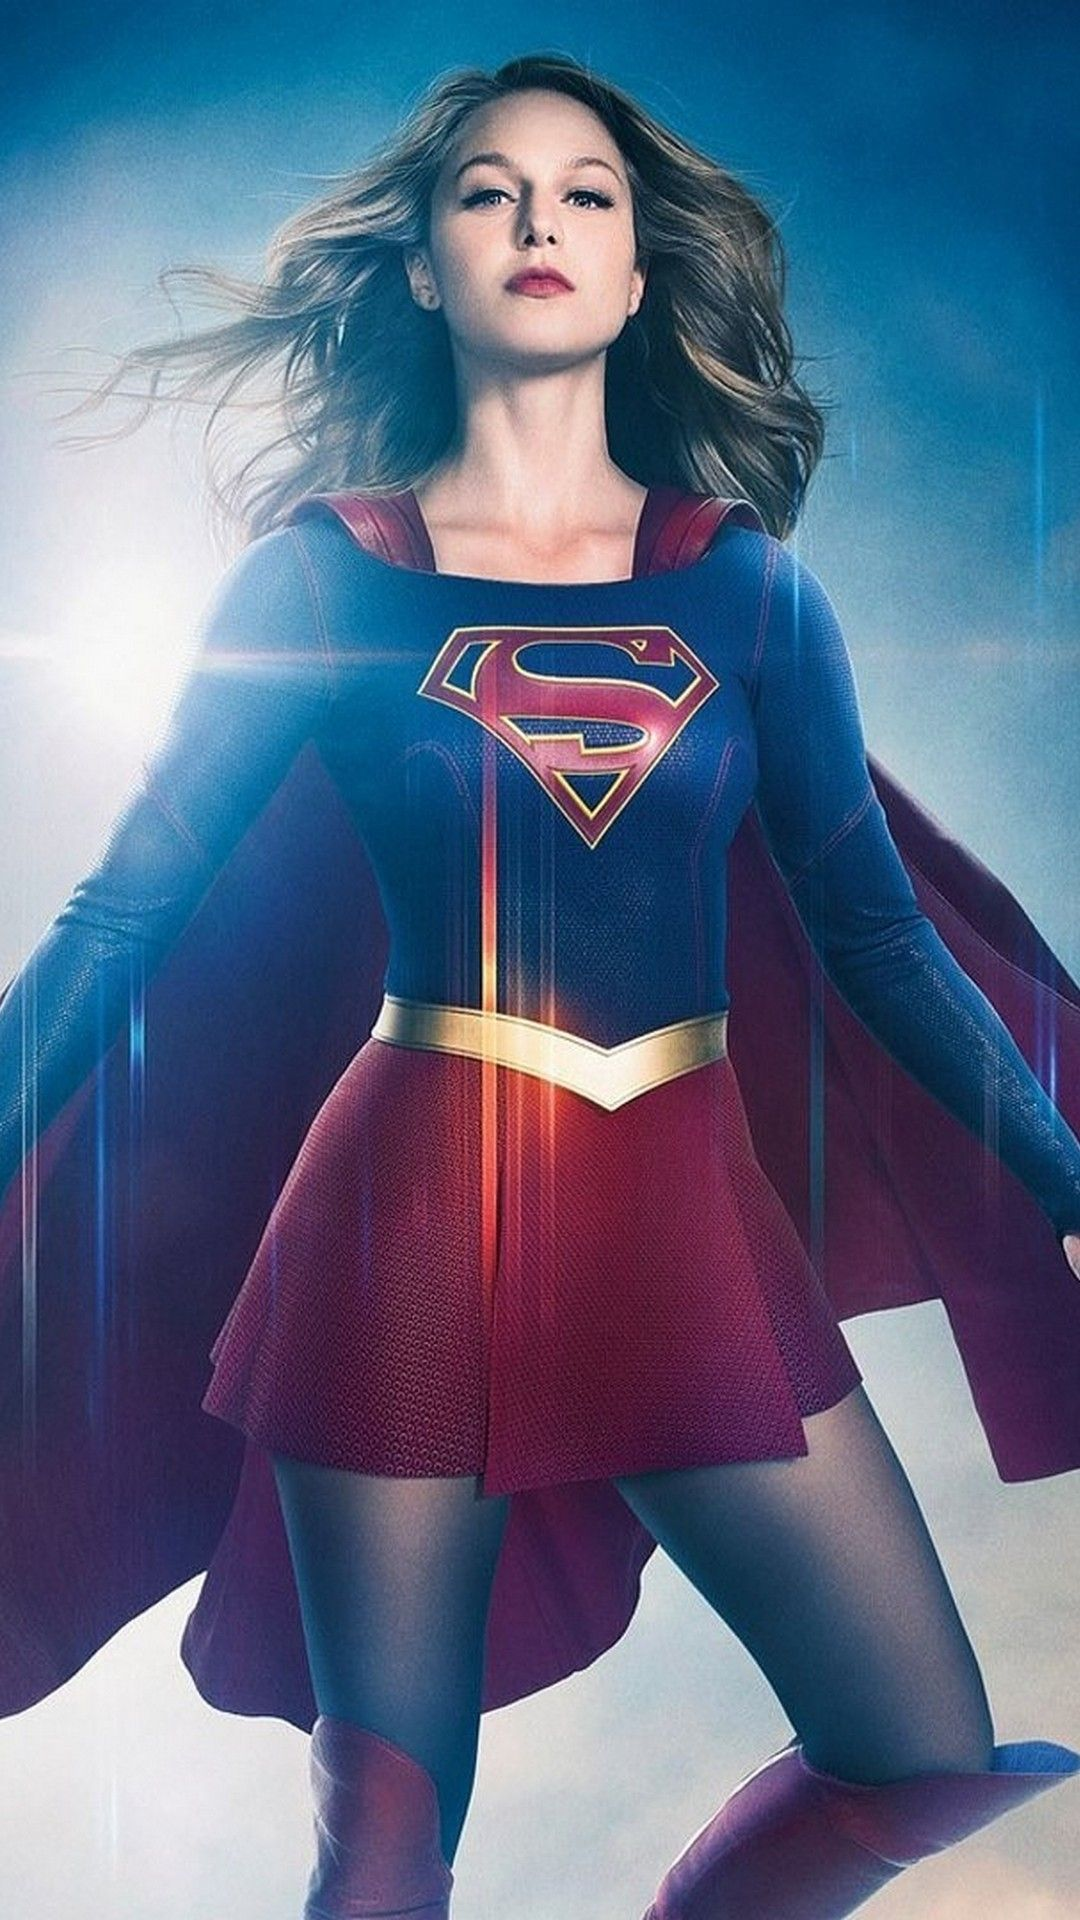 Supergirl Iphone 7 Wallpaper Supergirl Supergirl Dc